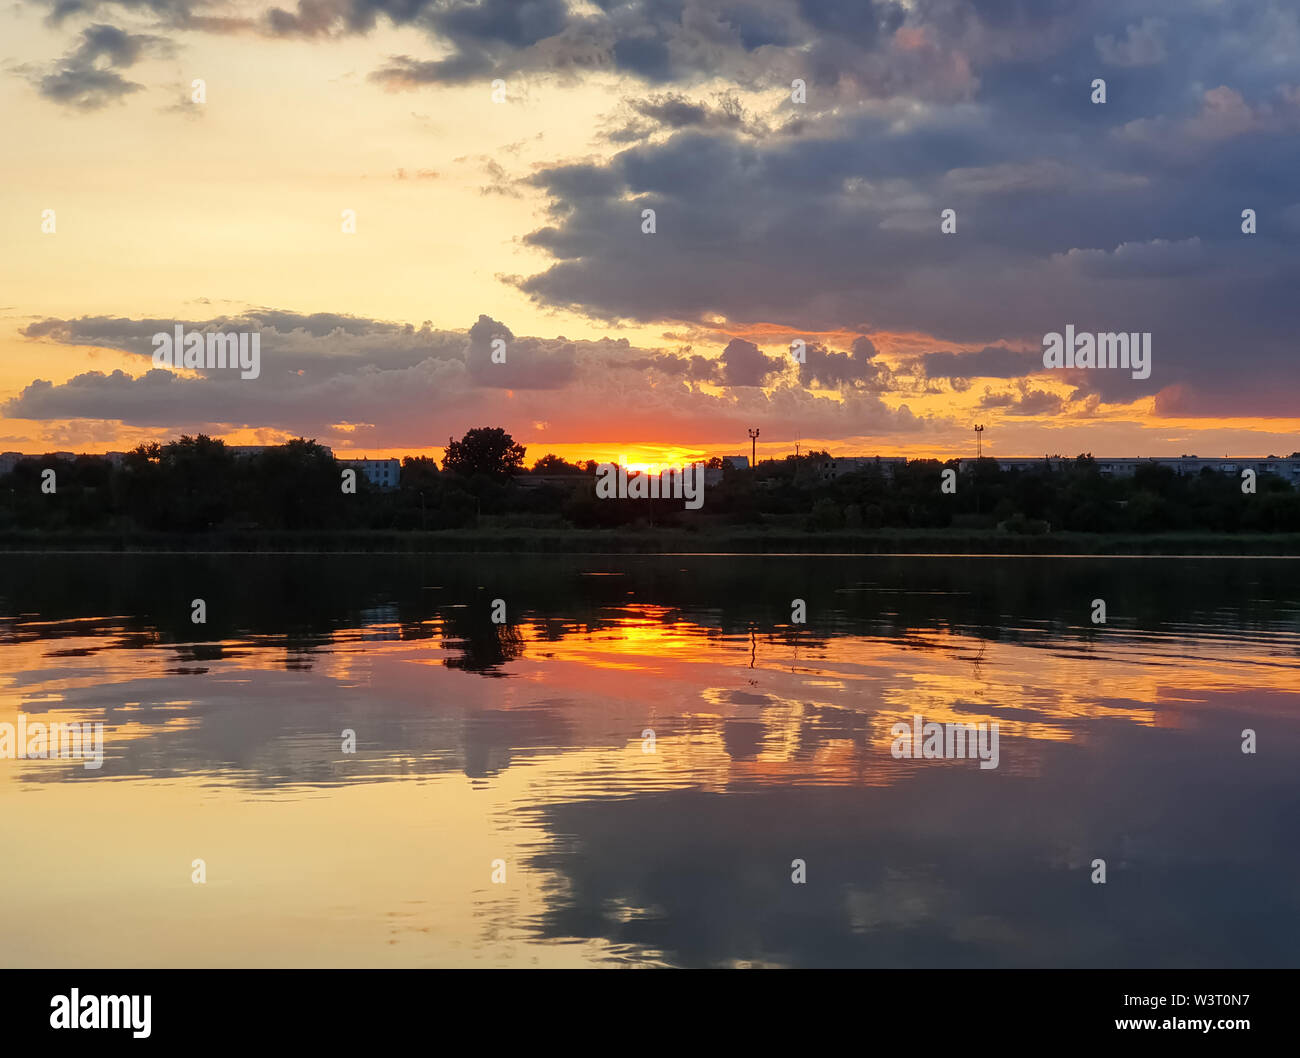 Beautiful sunset over the city horizon with reflection on the calm lake water in a silent summer evening. - Stock Image